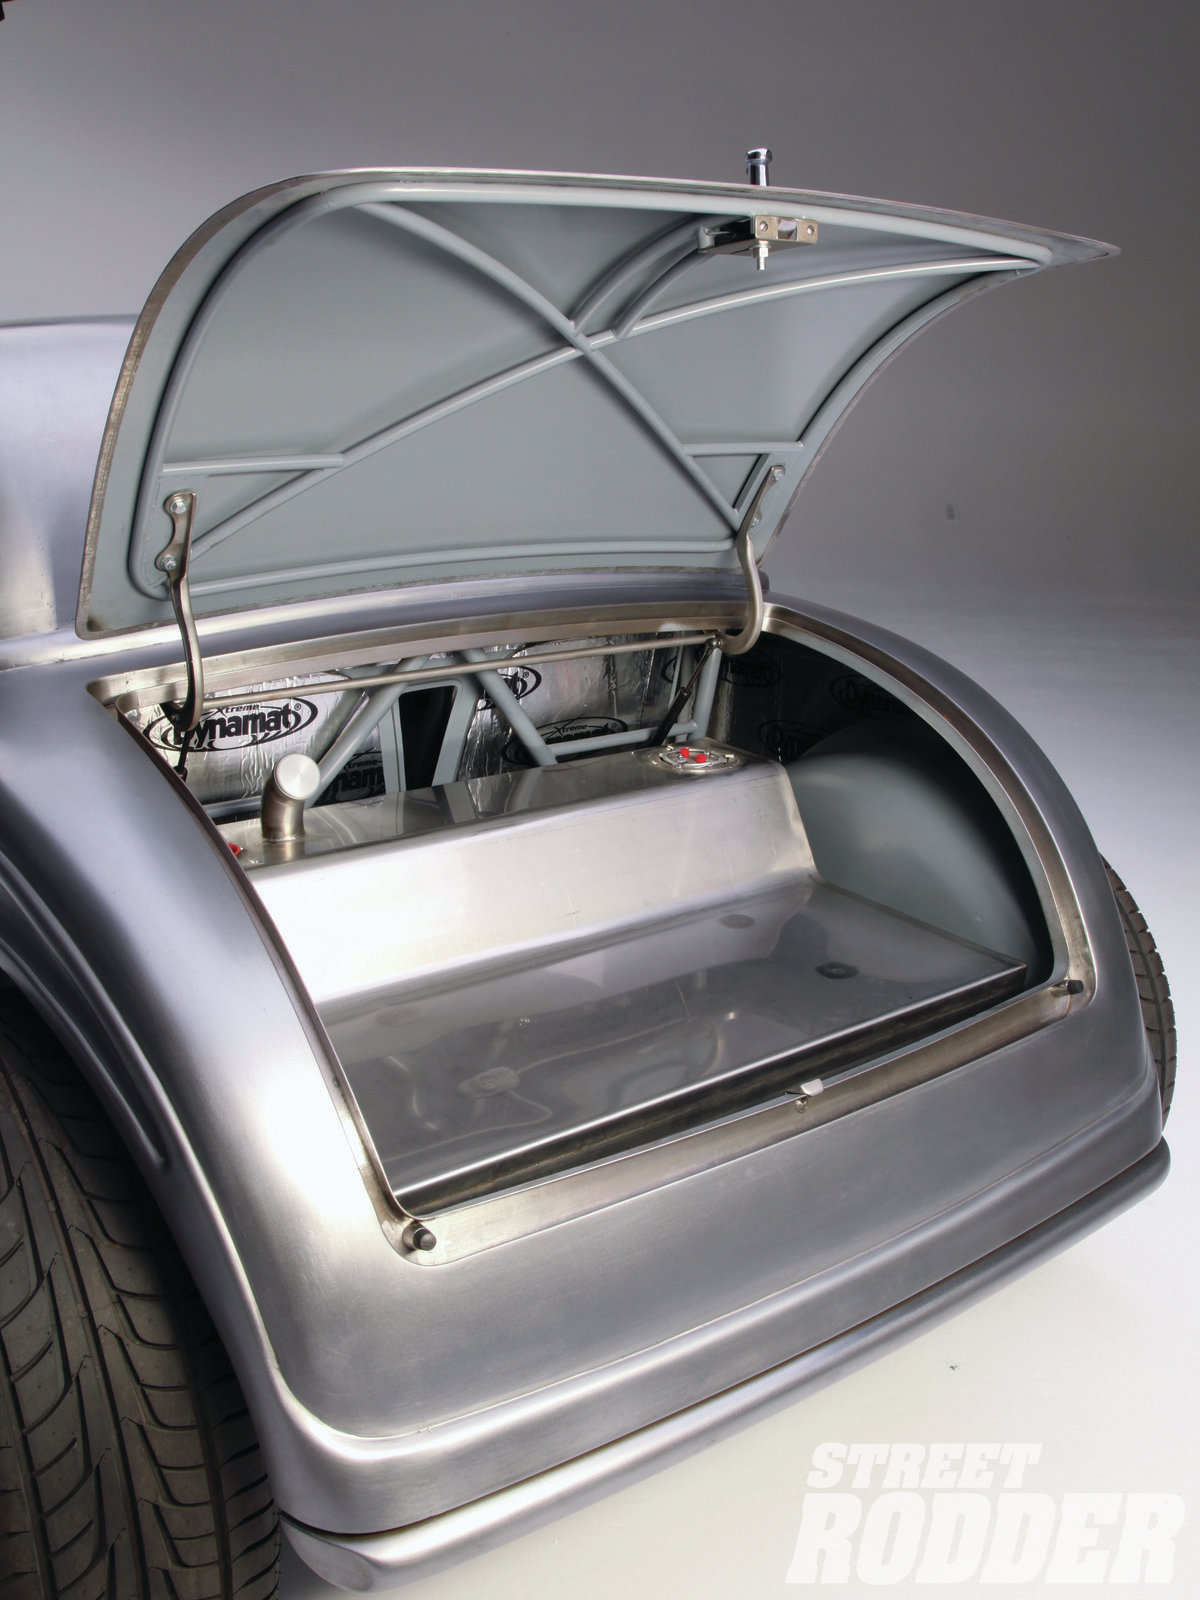 20| The tubular structure under the decklid will remain exposed even after the car is painted. Walden made a wooden buck to create the shape for the fuel cell, which is made out of stainless steel.